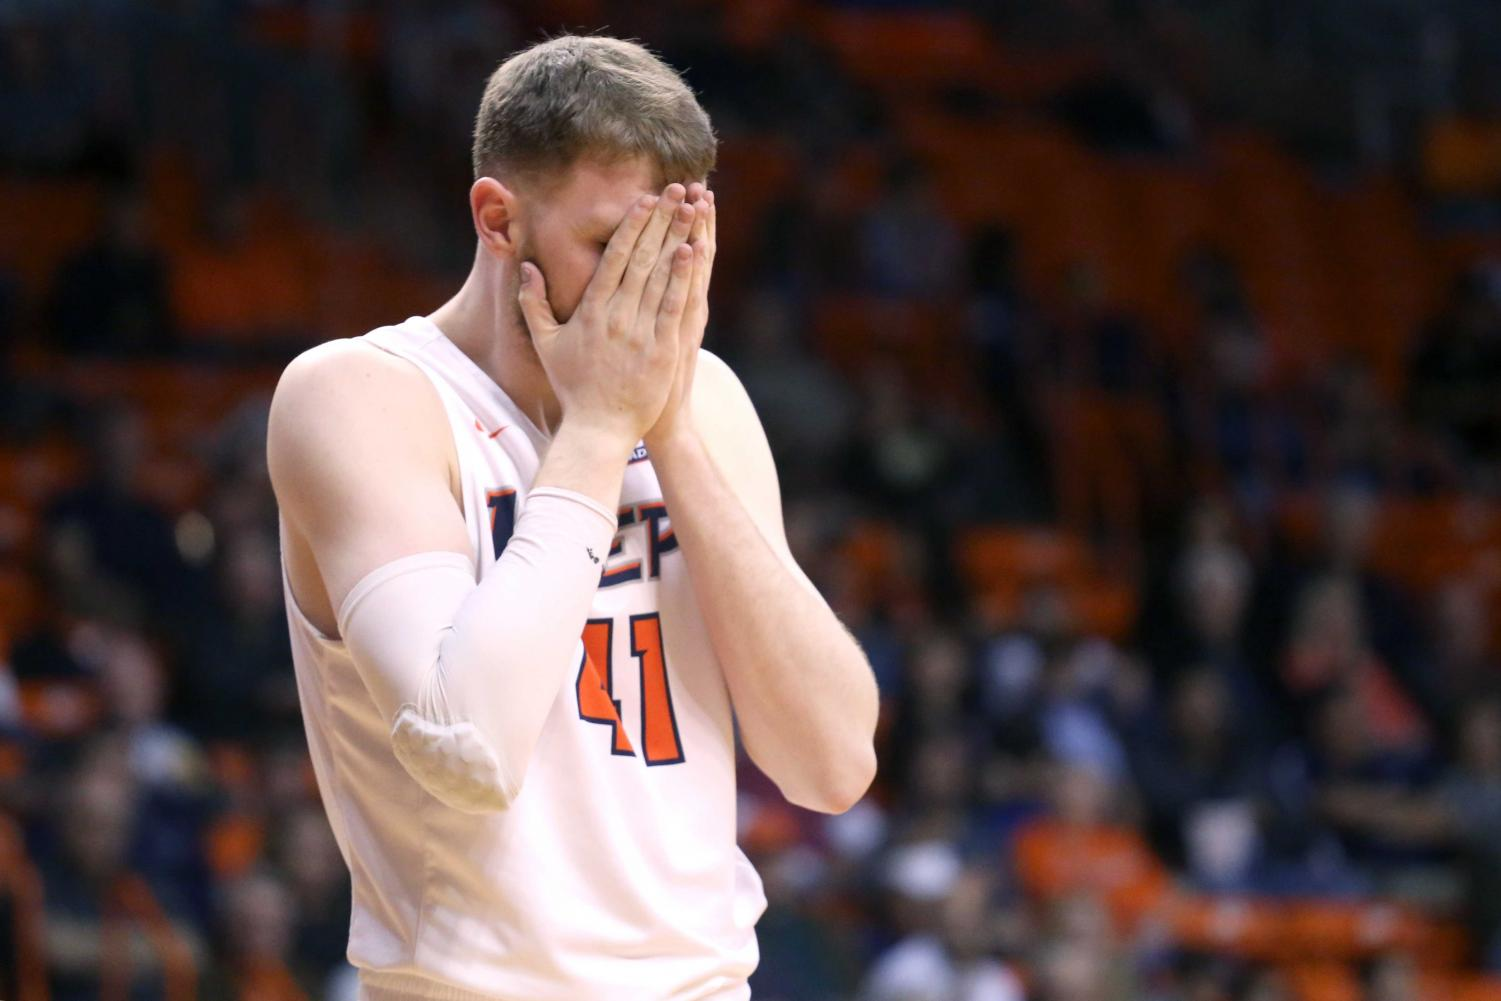 Matt Willms finished the game with a team-high 12 points in a 63-59 loss to visiting UTSA.